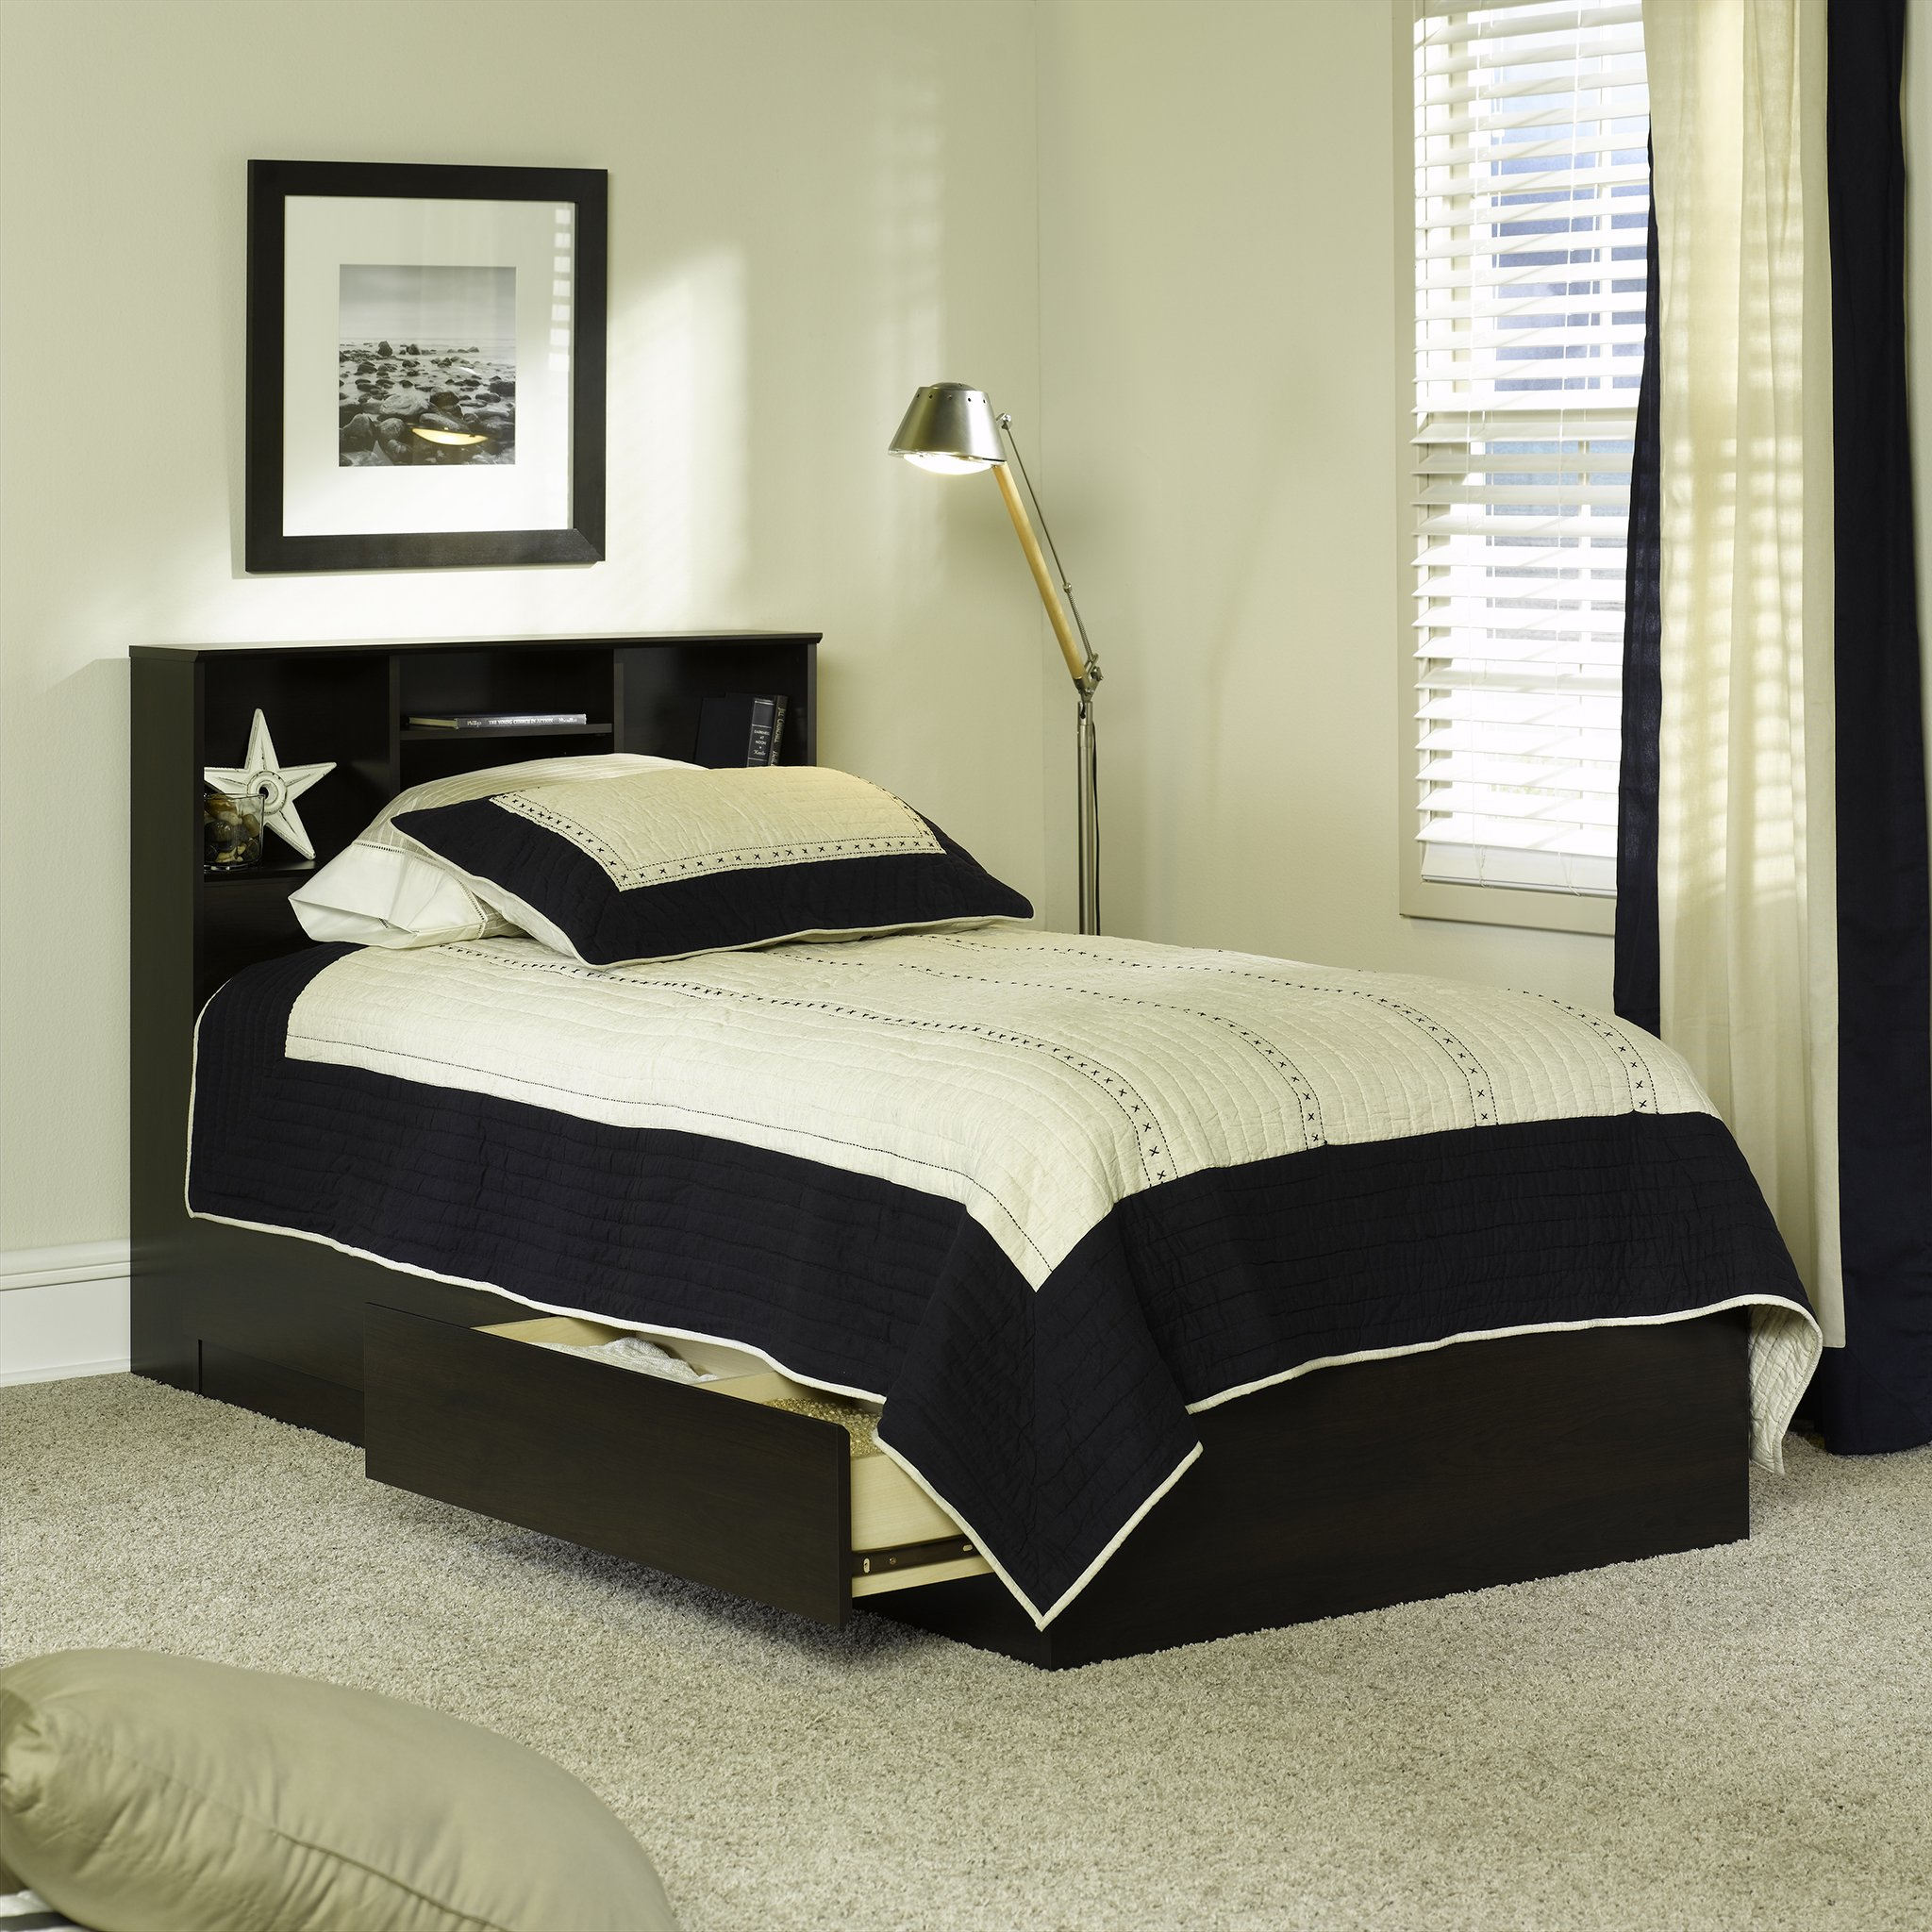 Twin Beds with Storage Espresso Finish Twin Storage Bed by Mainstay